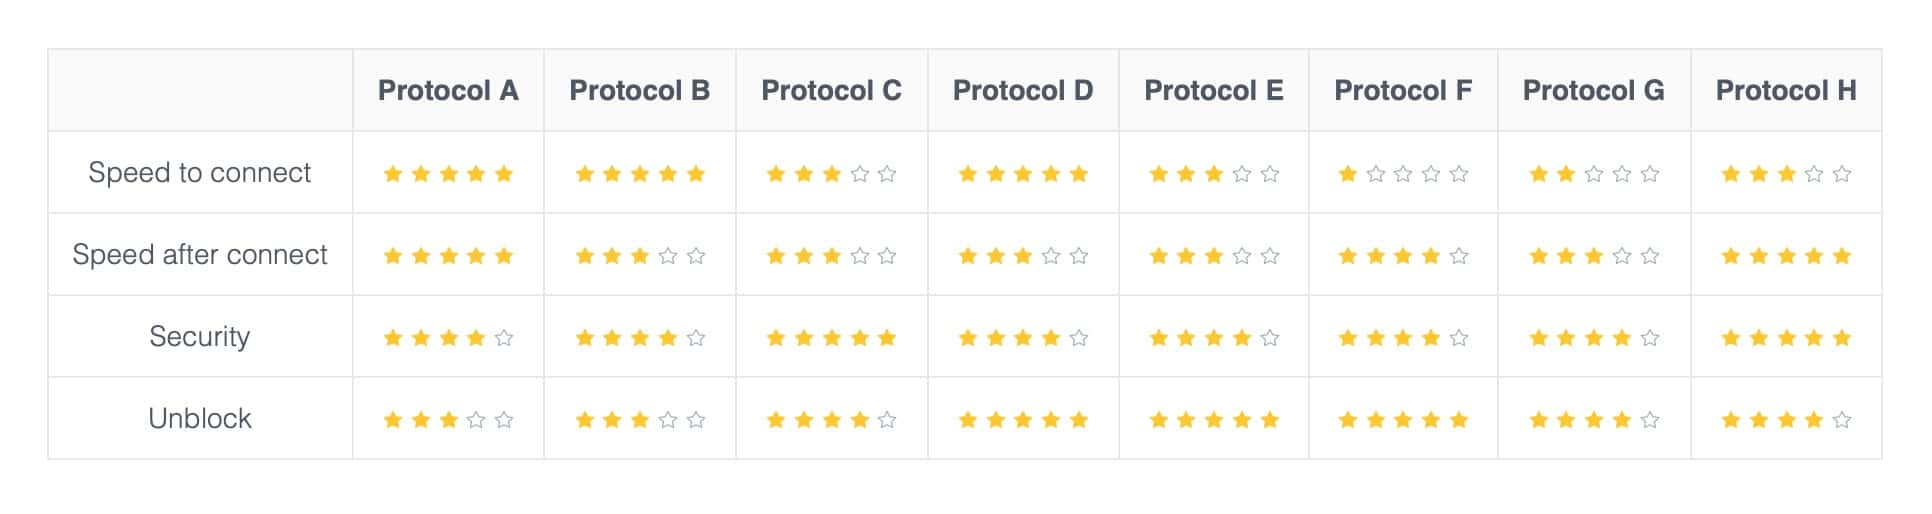 X-VPN - Protocols Rating